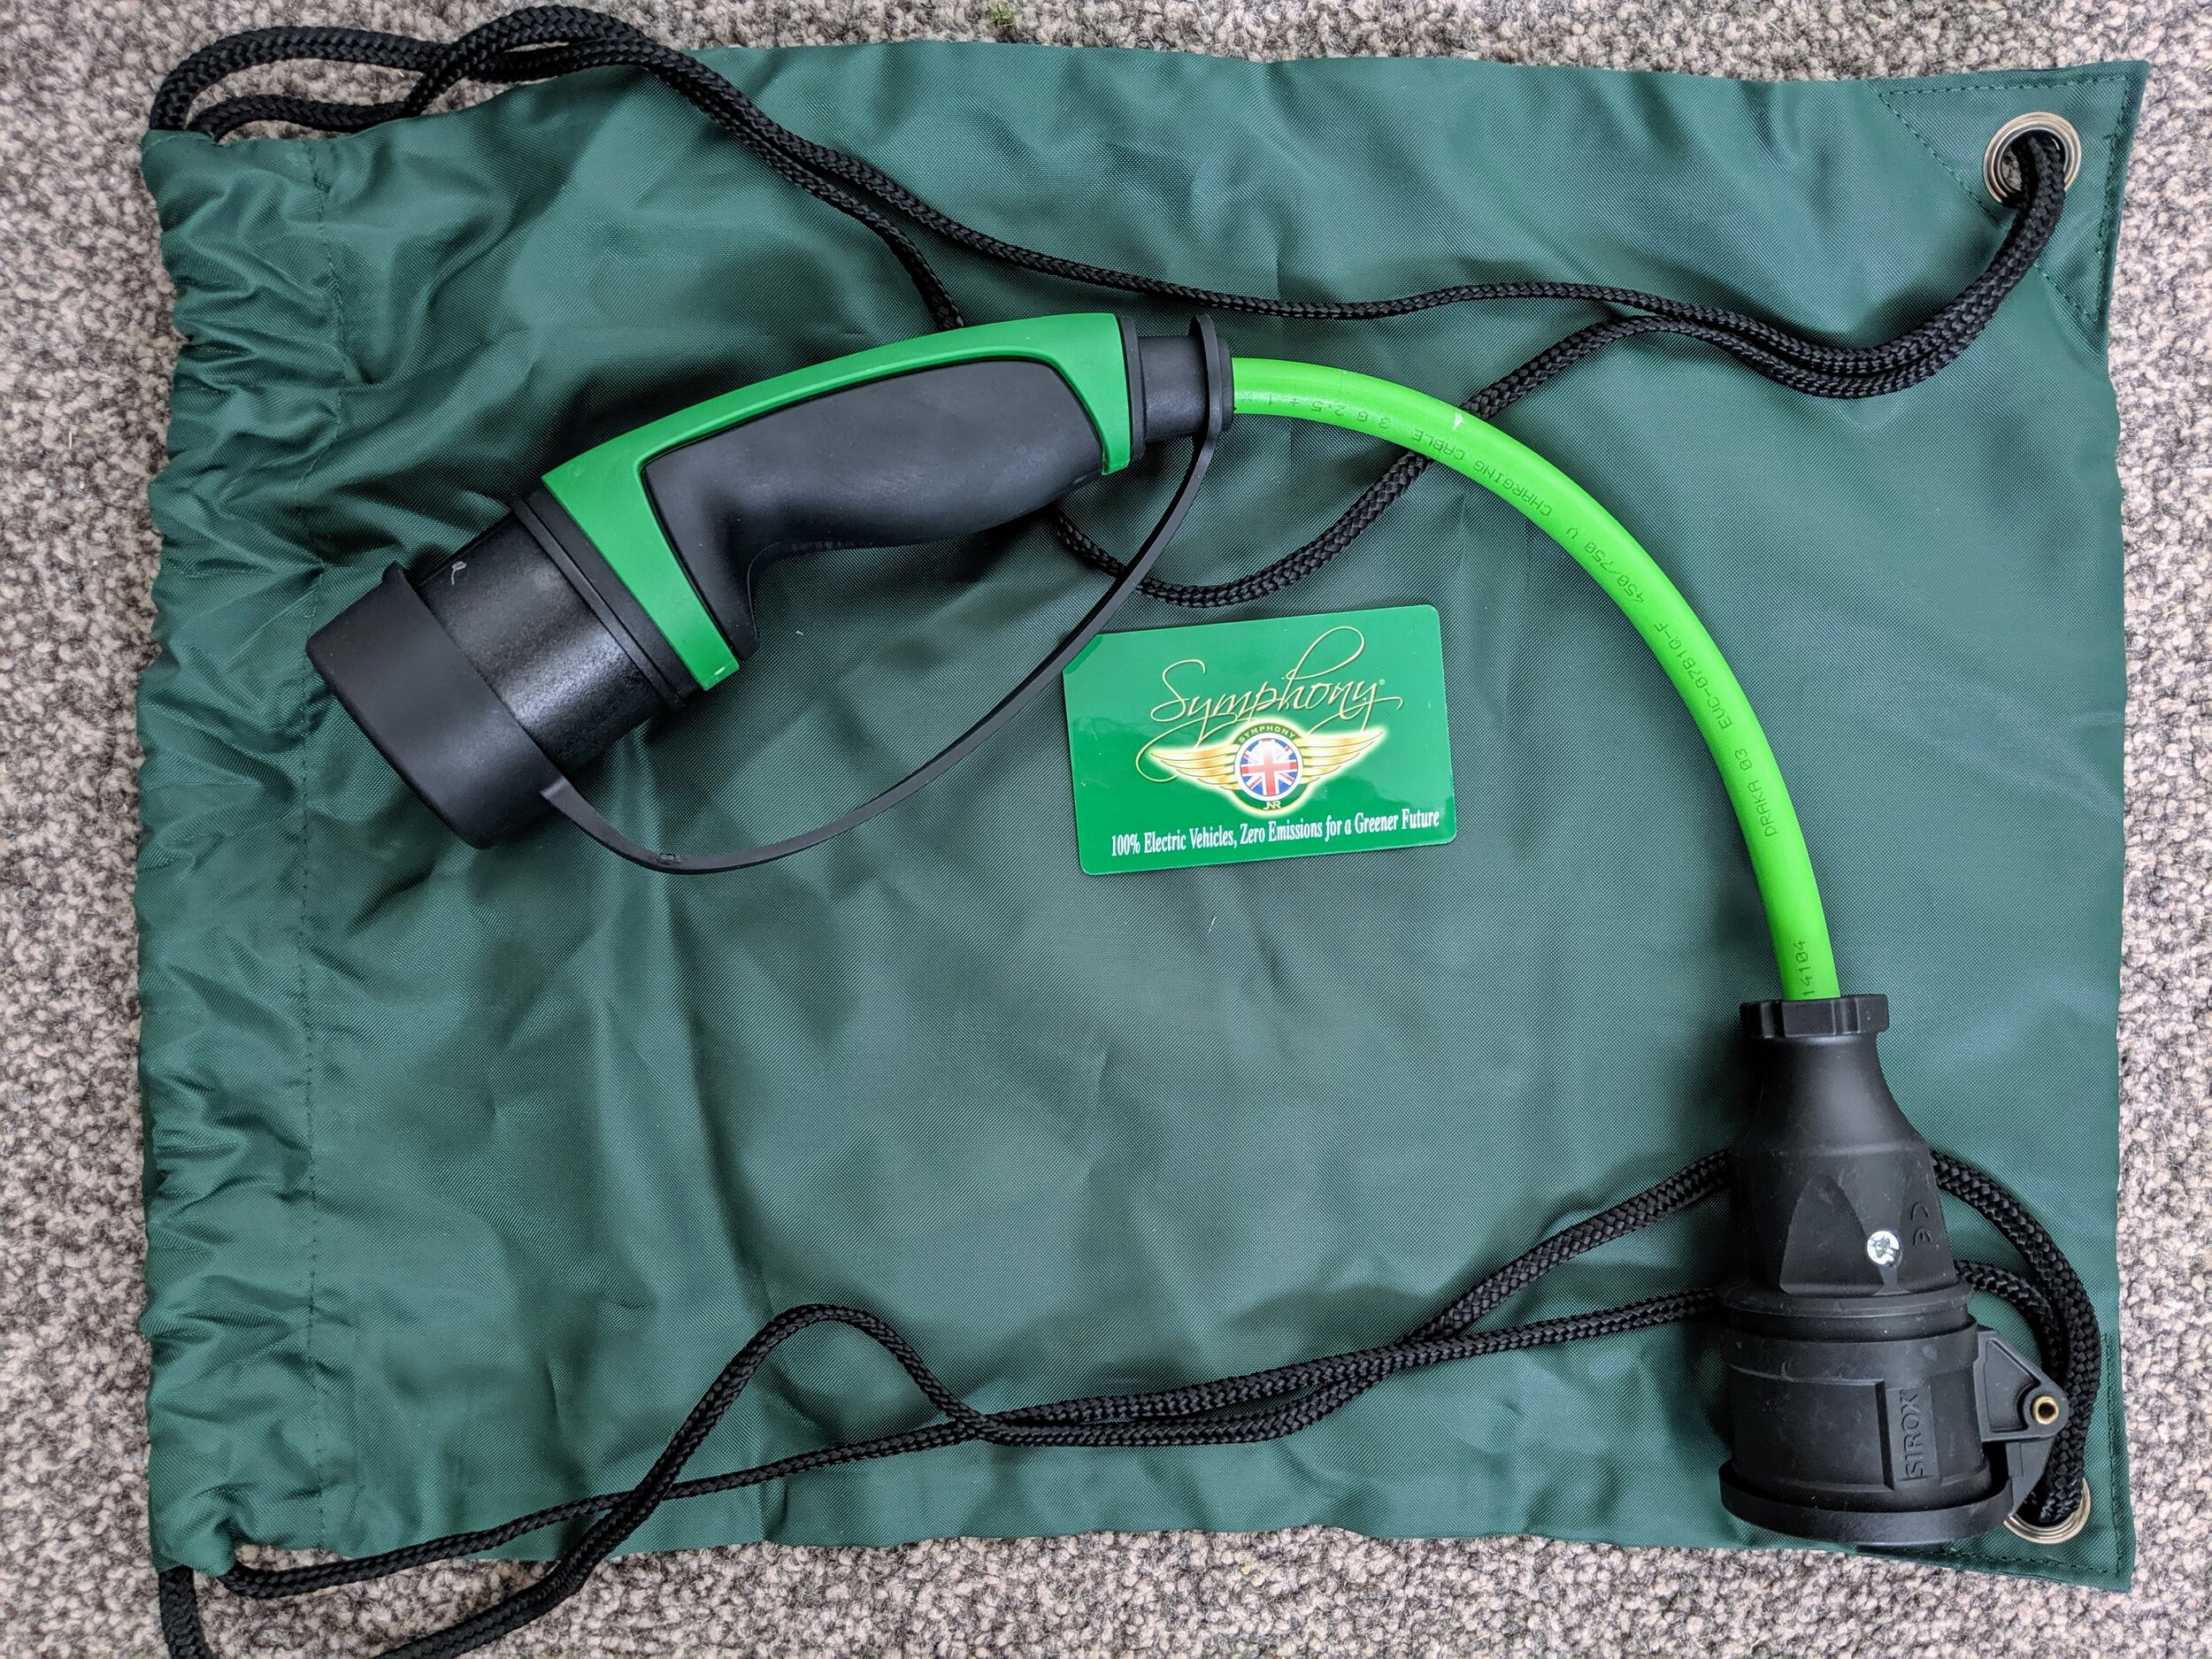 Cable adaptor Approved for use with all Type 2 Charging points. Comes with free bag to protect iT in your Twizy